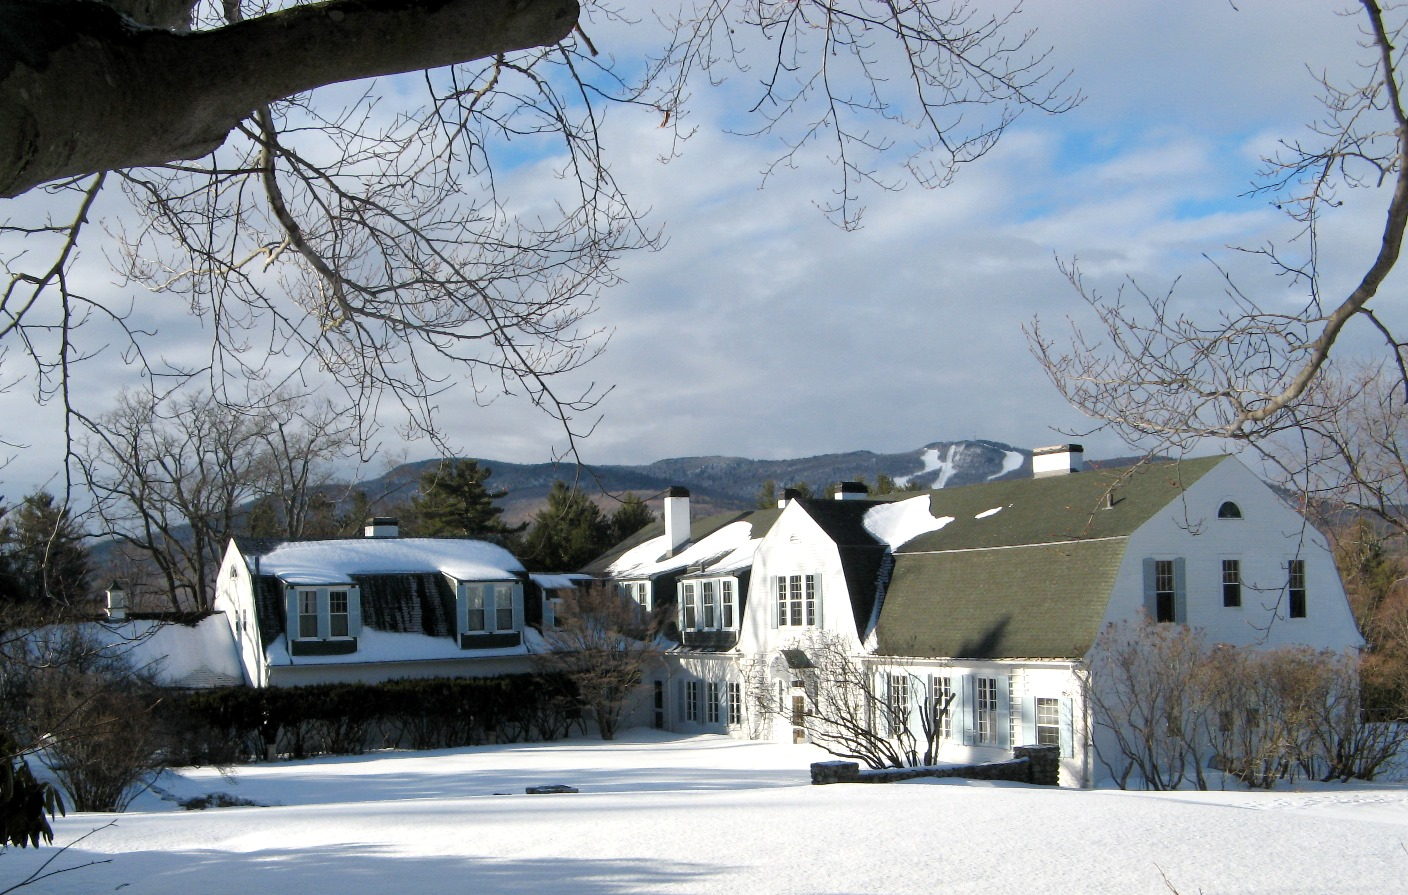 Main House in Winter.JPG